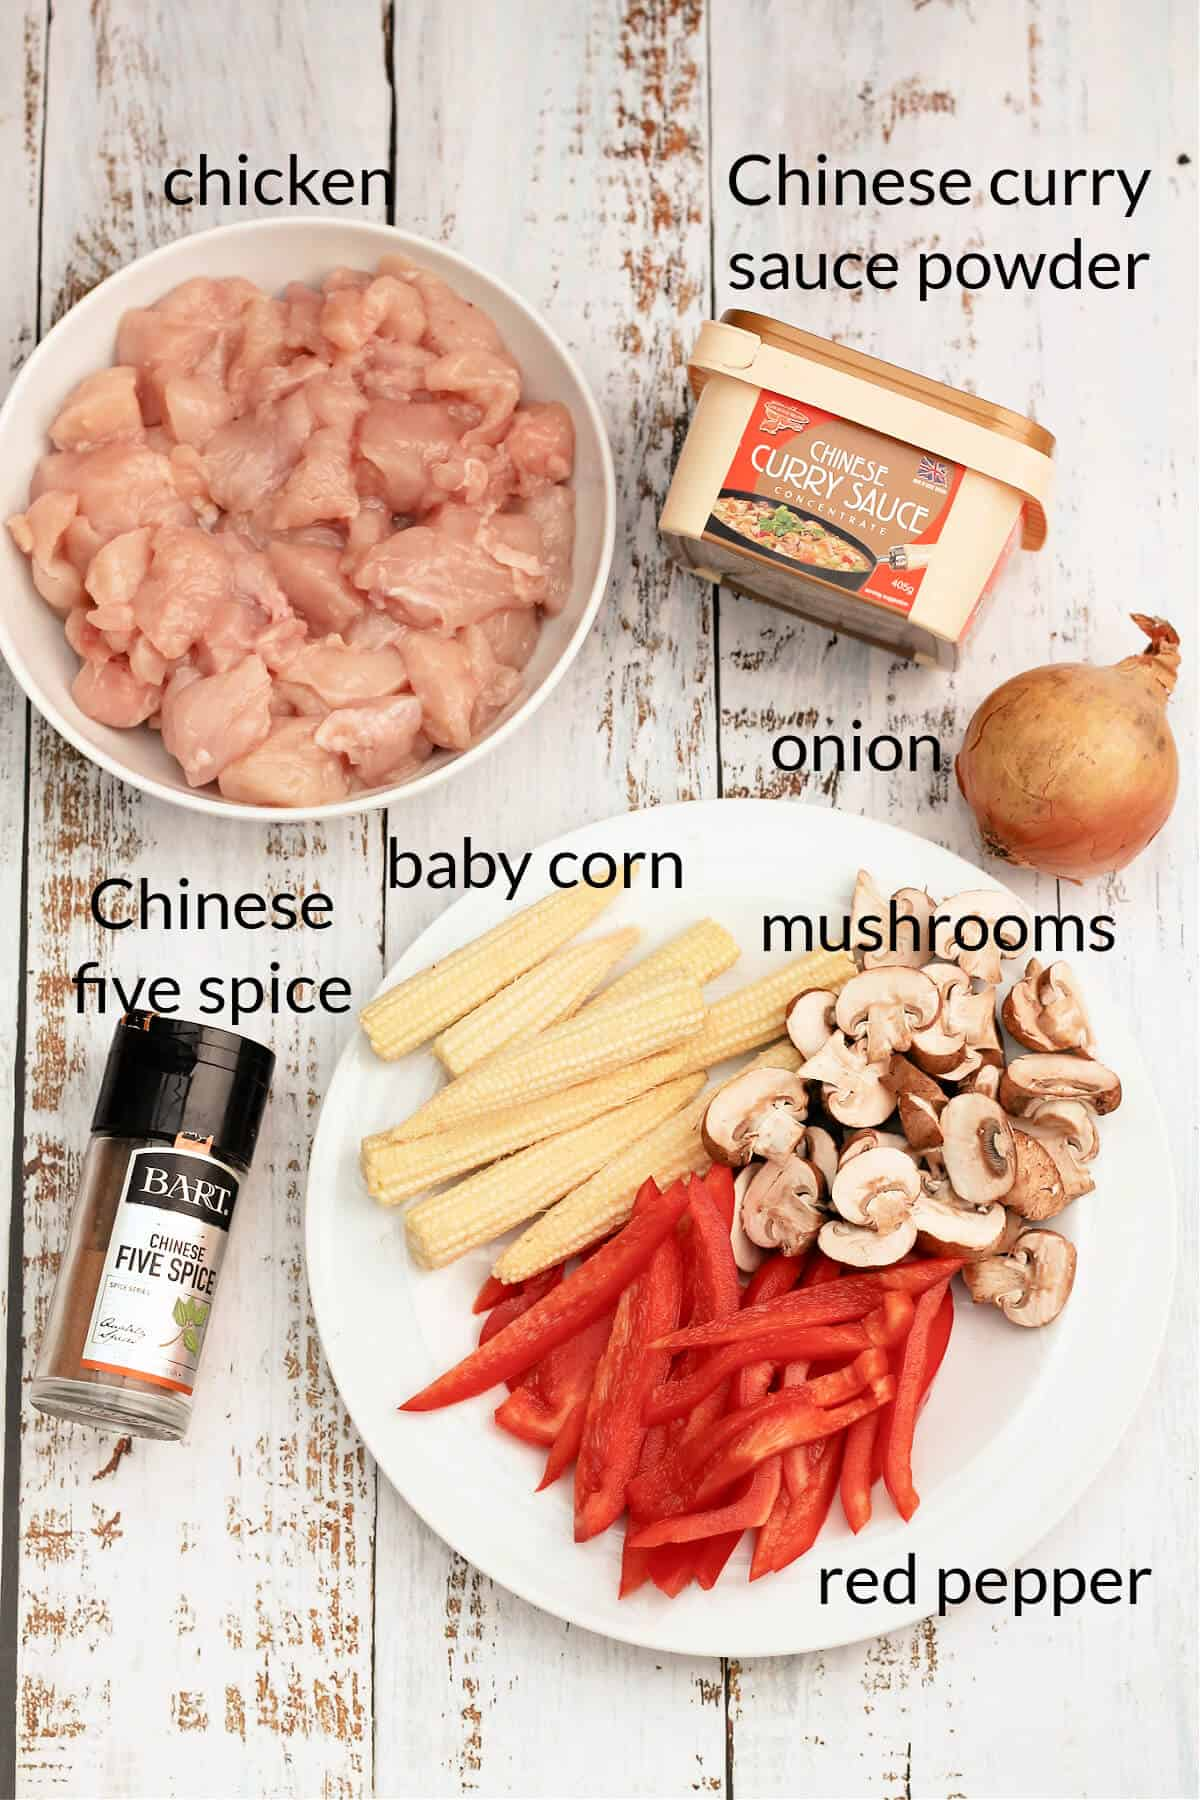 Labelled ingredients image showing all ingredients listed below.